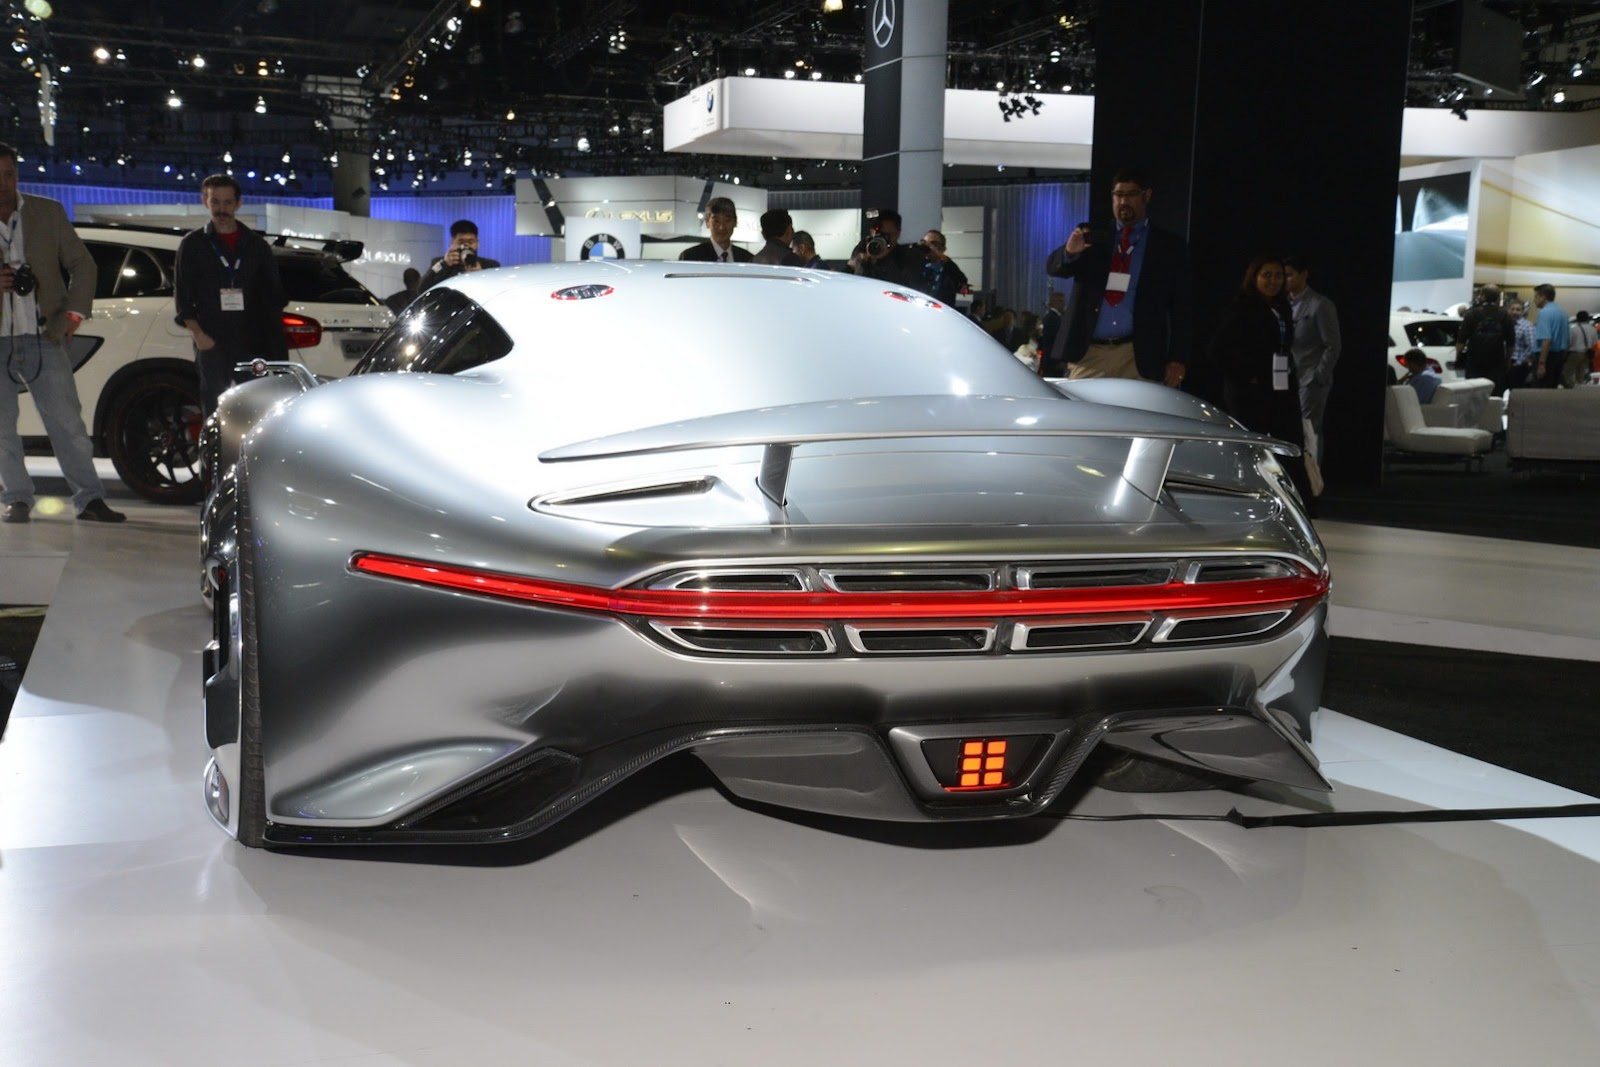 Ordinaire Mercedes Benz Amg Vision Gran Turismo Rear Top. Gentil VWvortex  Forums